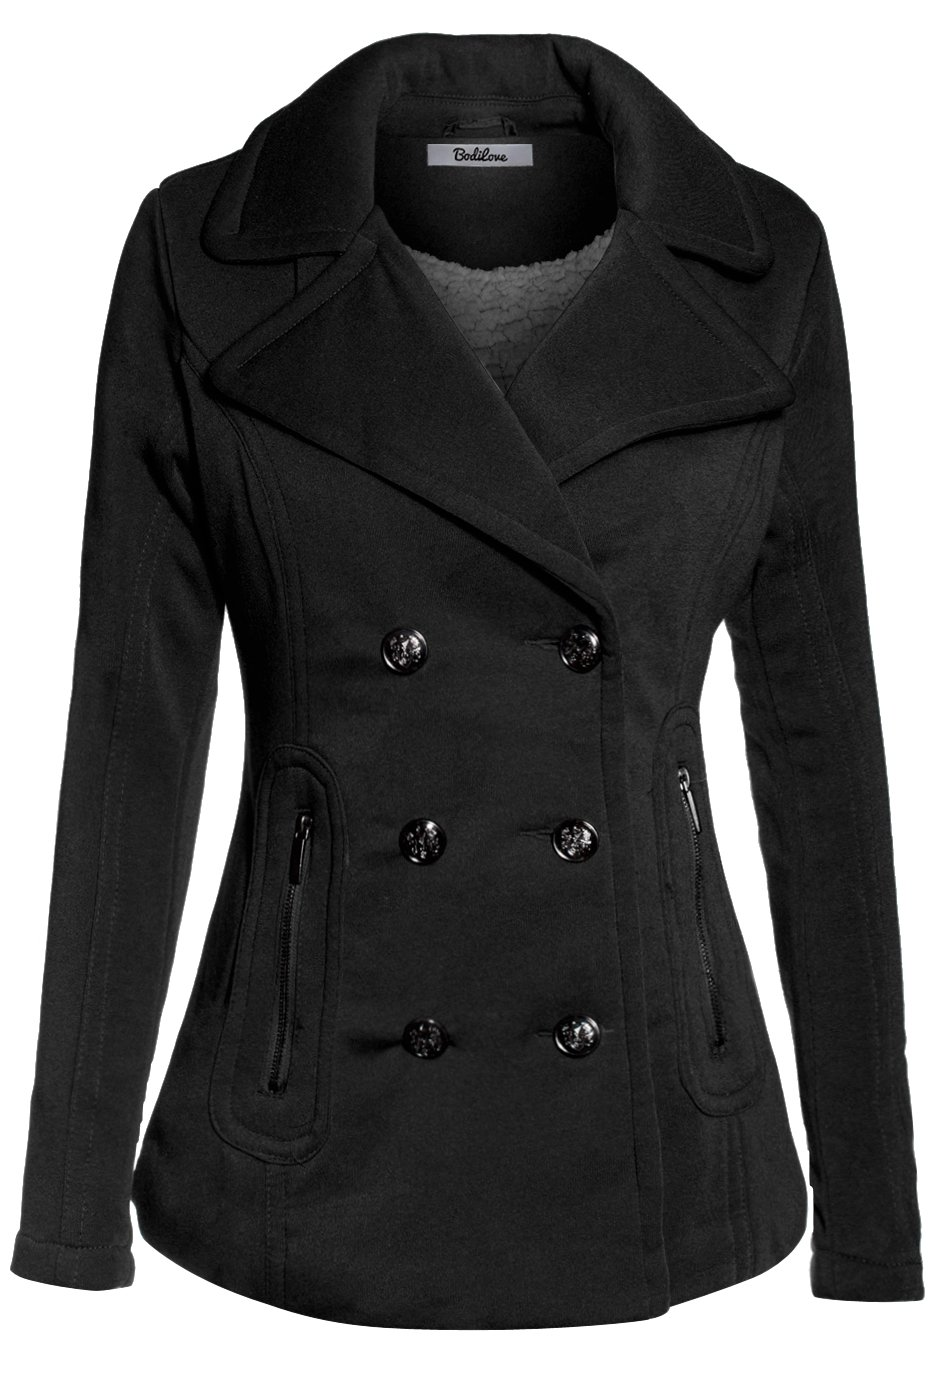 BodiLove Women's Stylish and Warm Peacoat with Sherpa Lining Black L by BodiLove